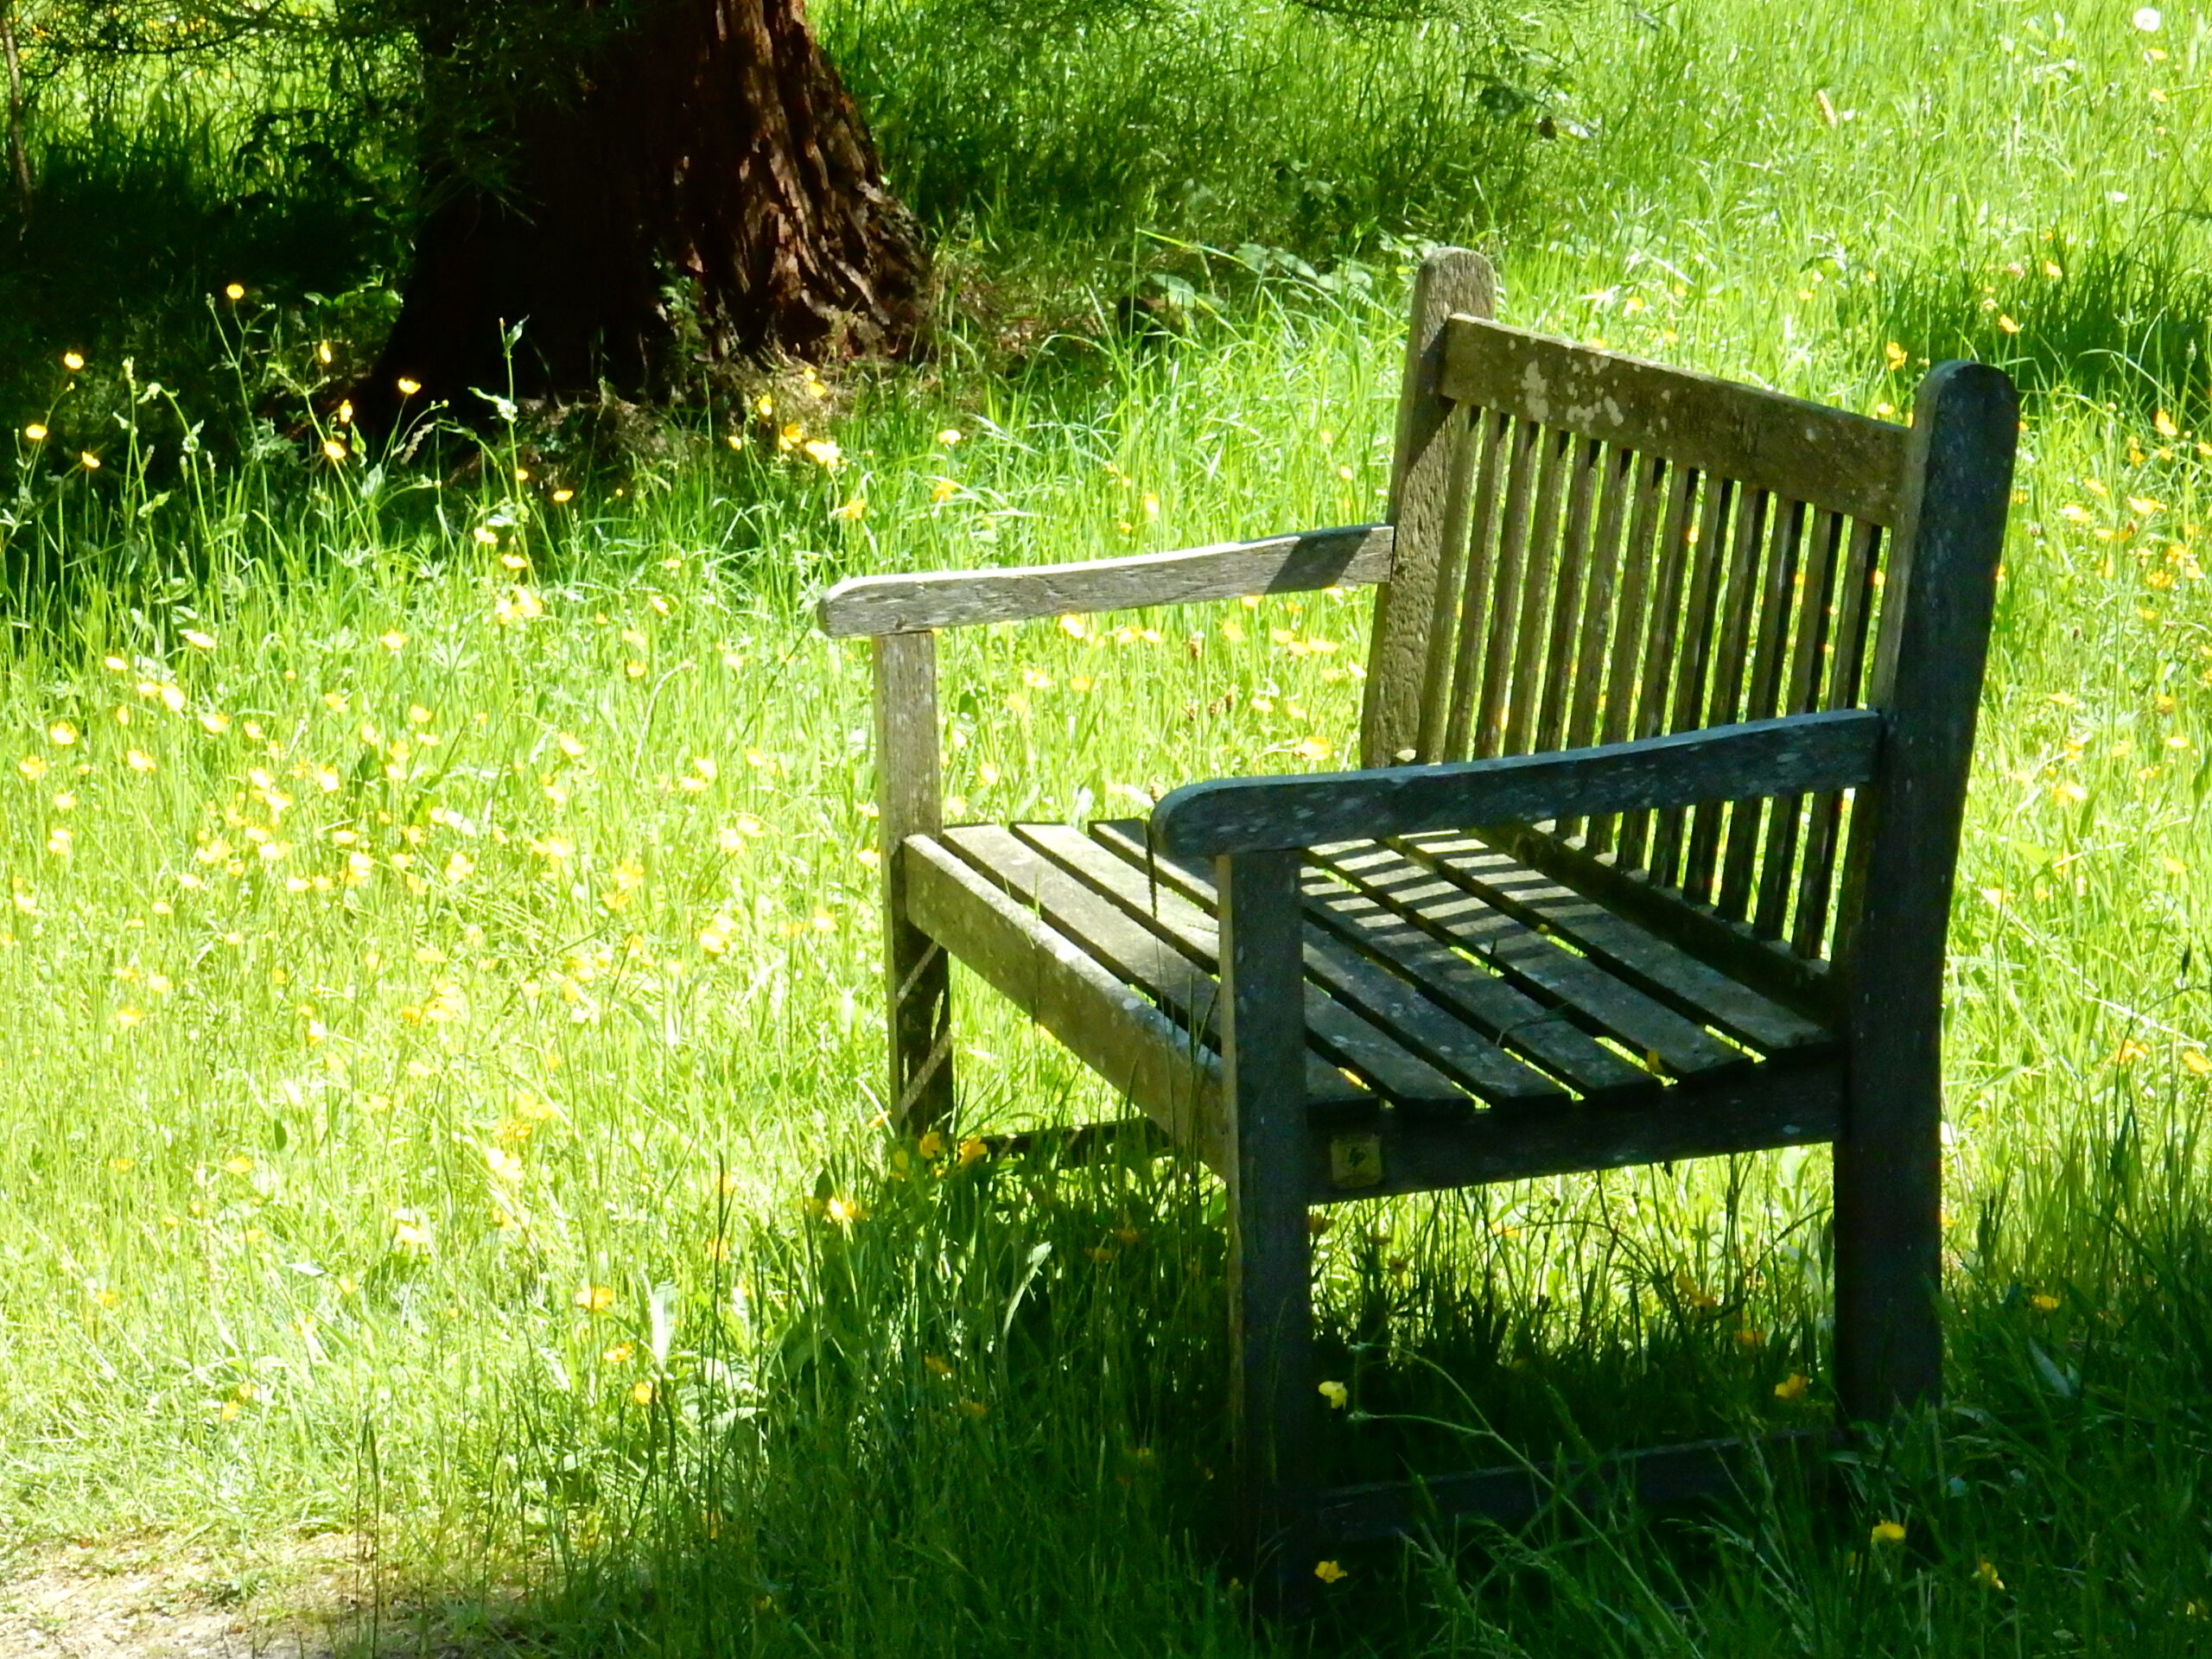 Bench in amongst the grass